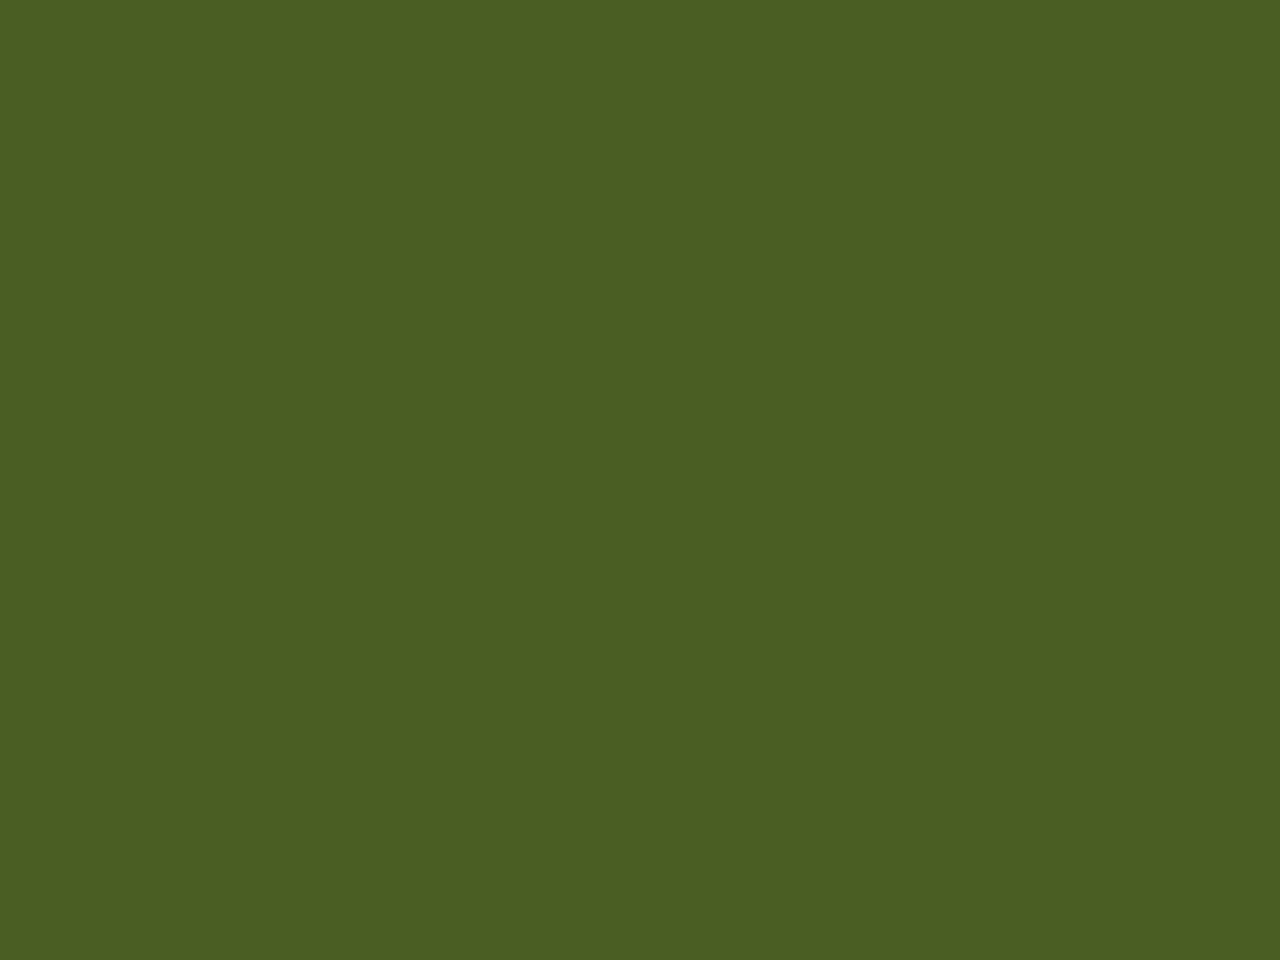 1280x960 Dark Moss Green Solid Color Background